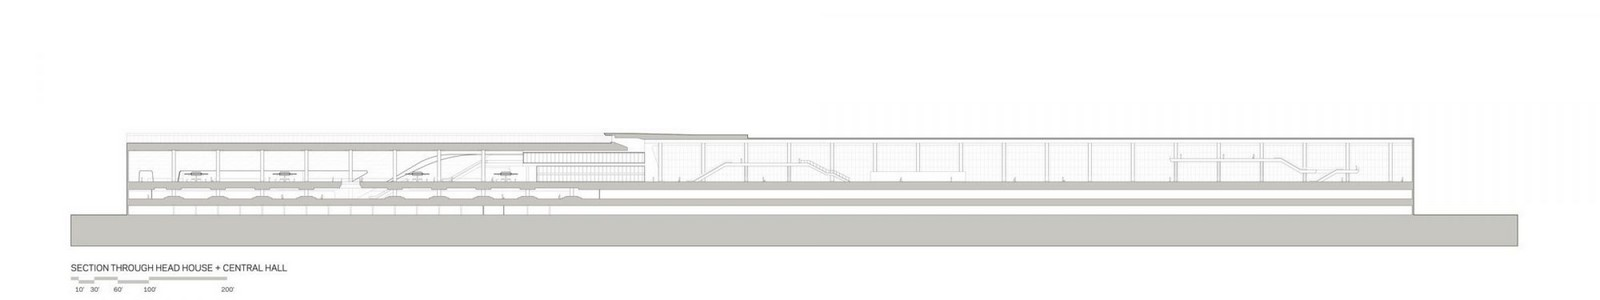 LaGuardia Airport by HOK: Advanced for it's time yet criticized - Sheet10